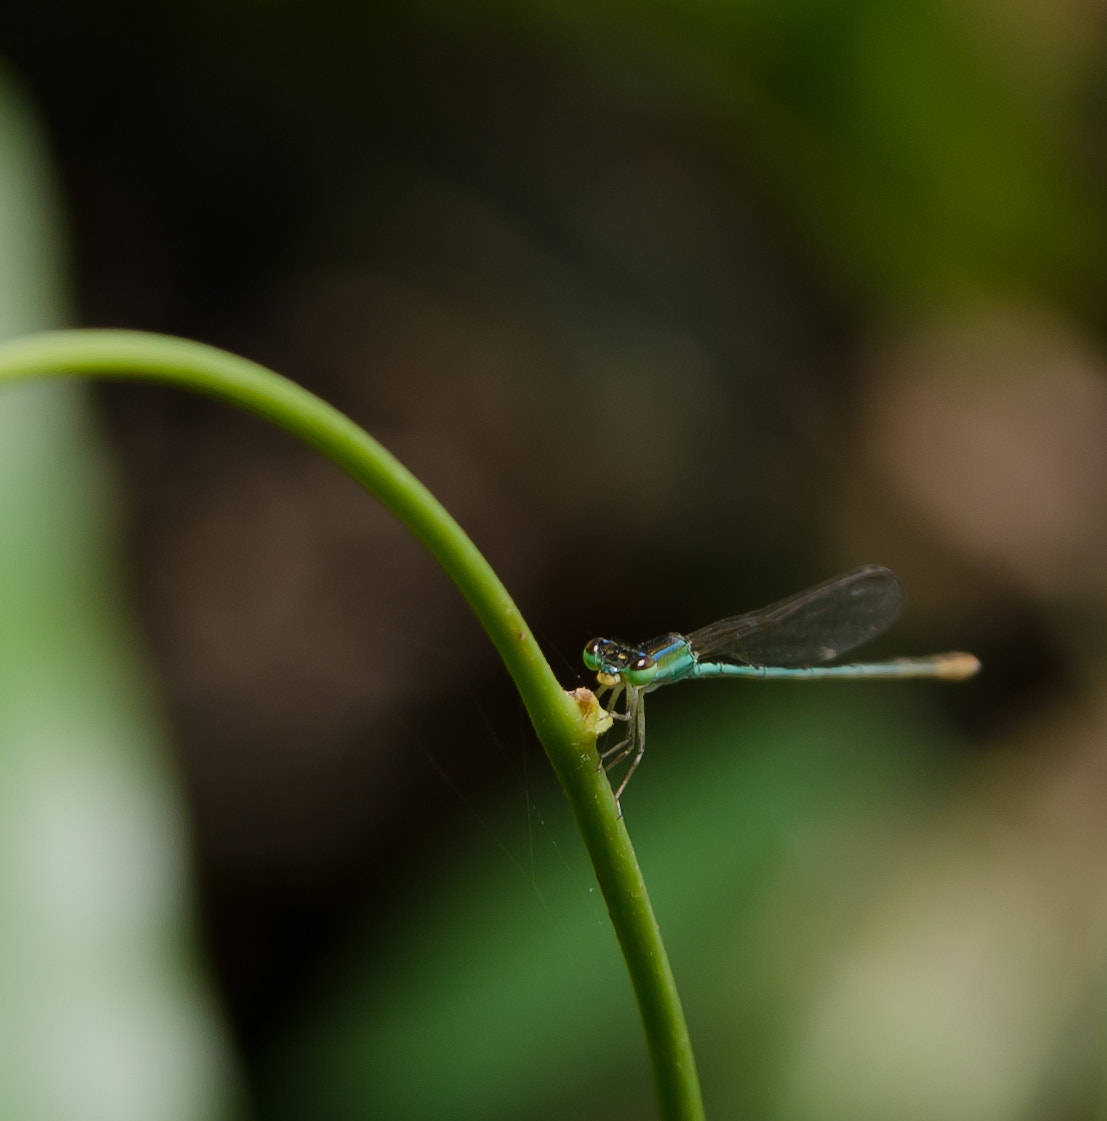 Photograph DragonFly by Vikas Nambiar on 500px